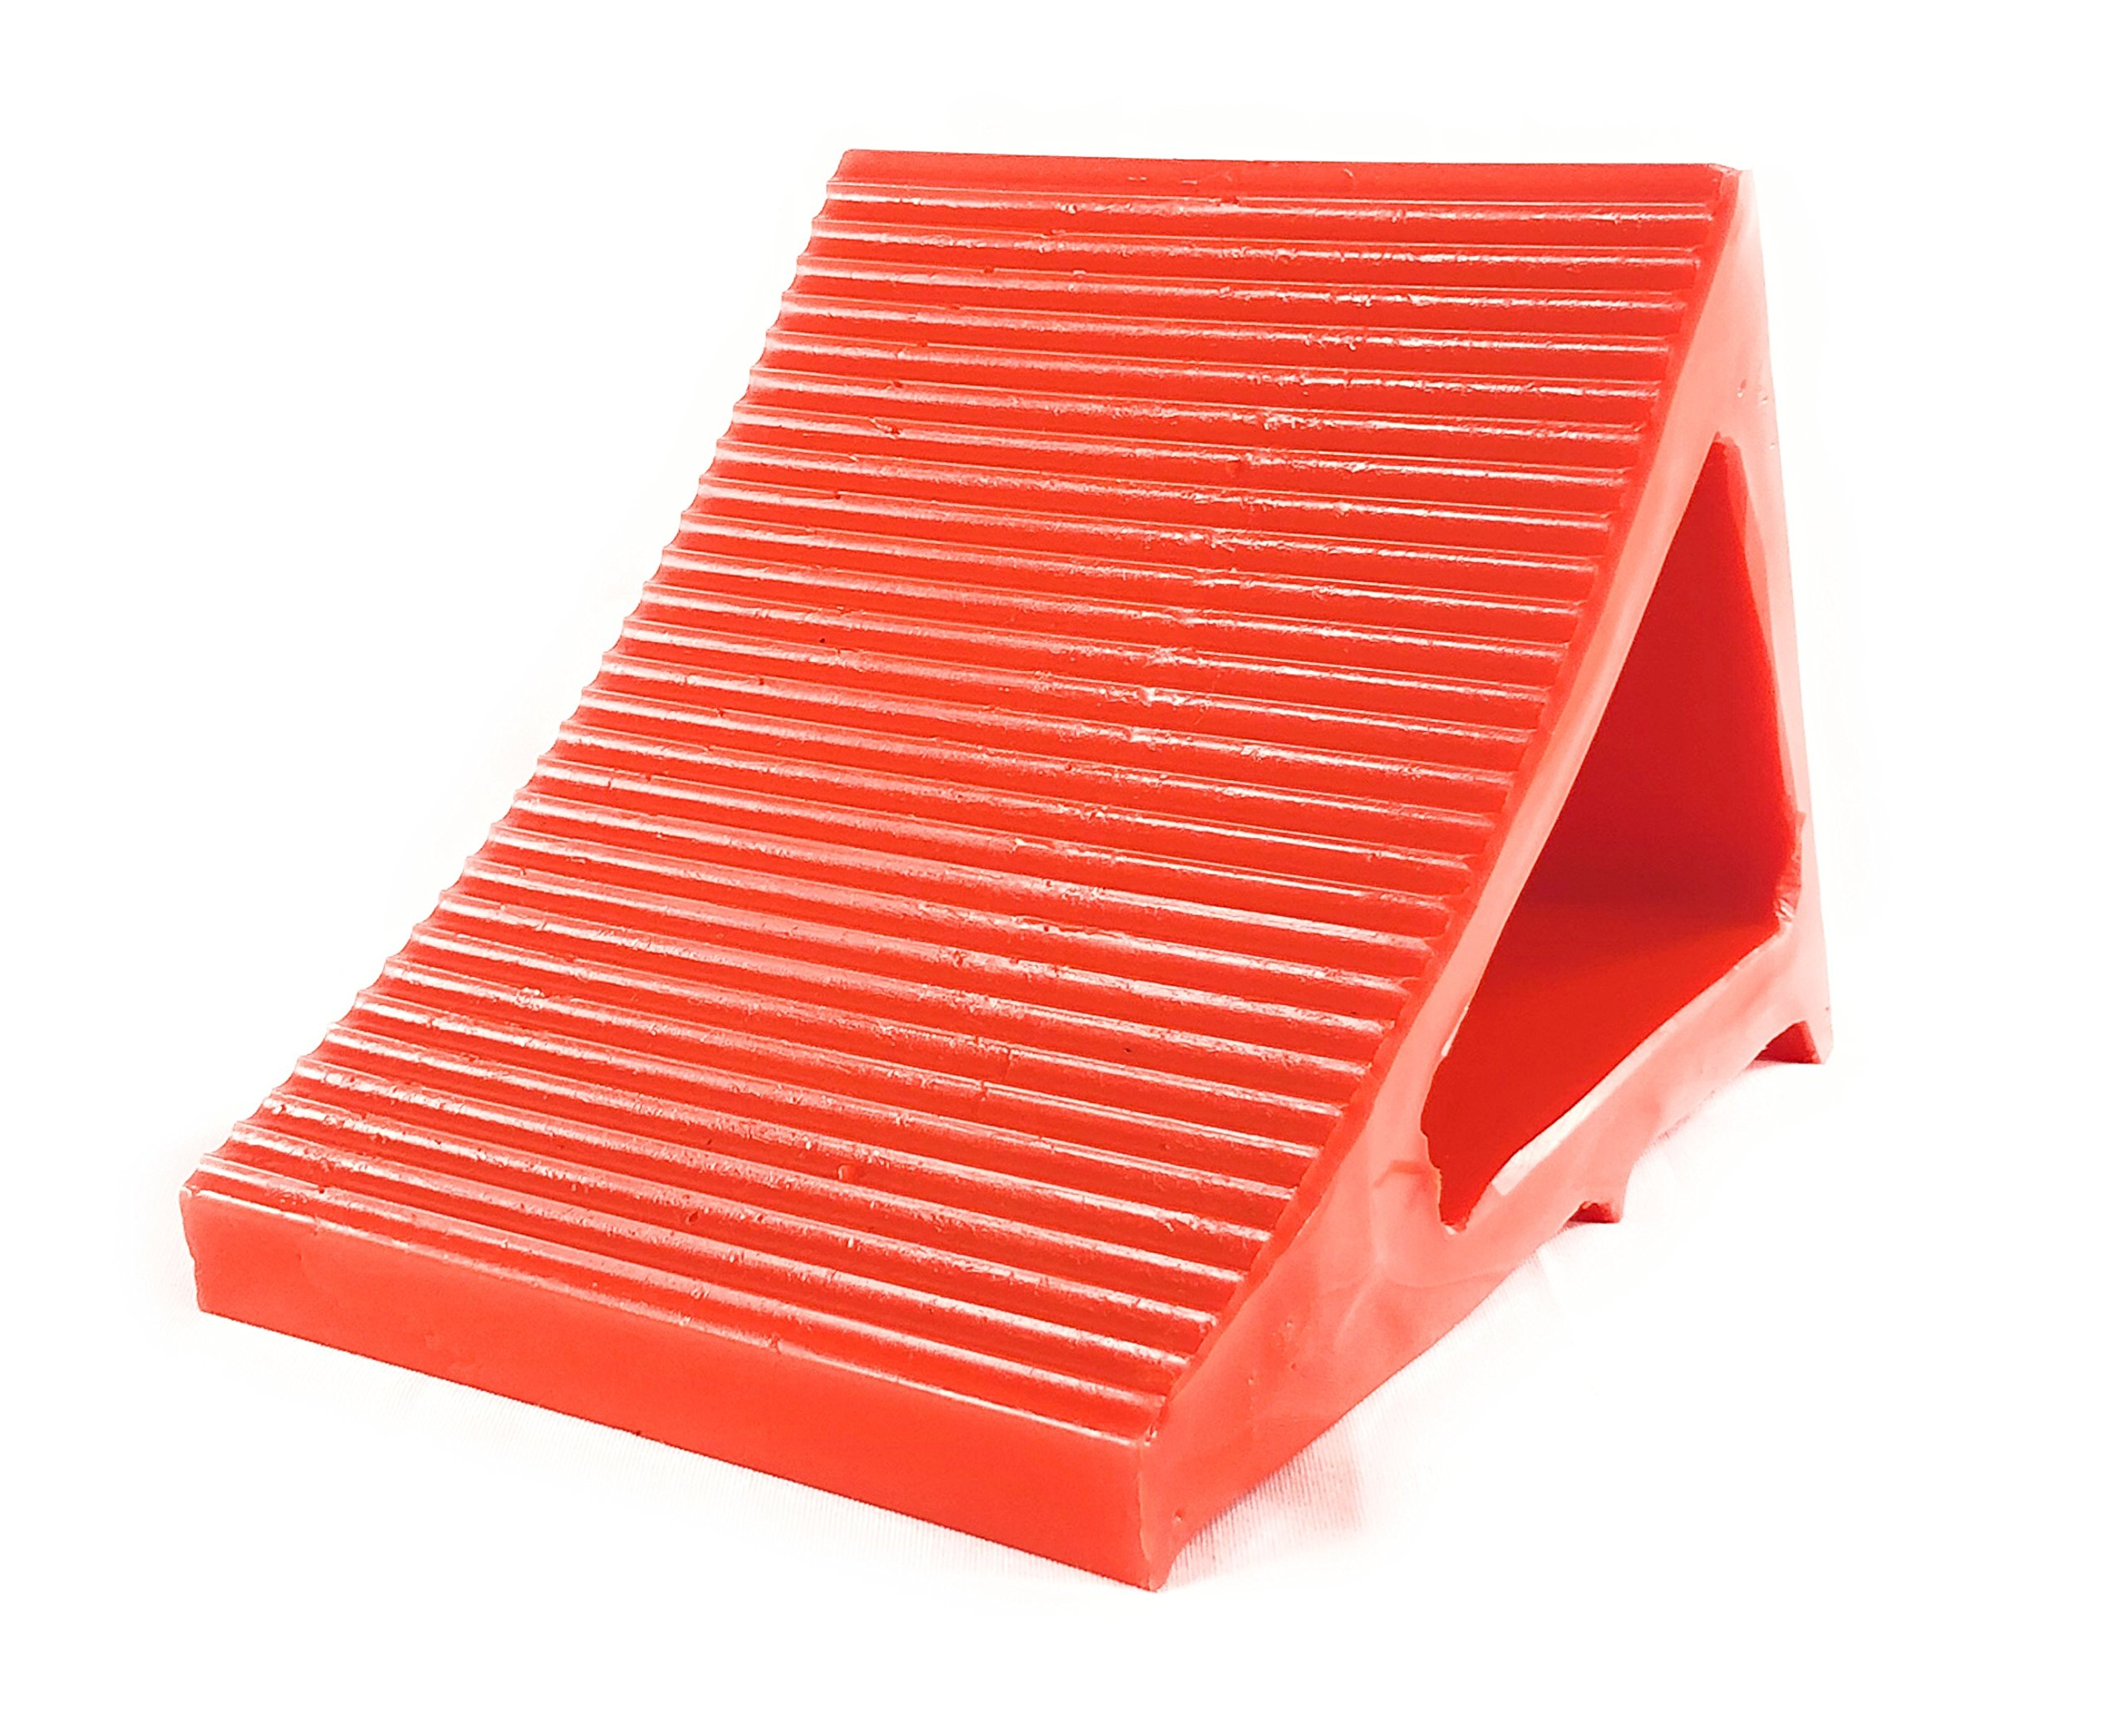 Elasco Wheel Chock, Weatherproof, Outdoor Grade, Polyurethane better than Rubber or Plastic, Keeps Your Trailer or RV In Place, 5 Year Warranty (2 Pack, Orange) by Elasco Products (Image #3)